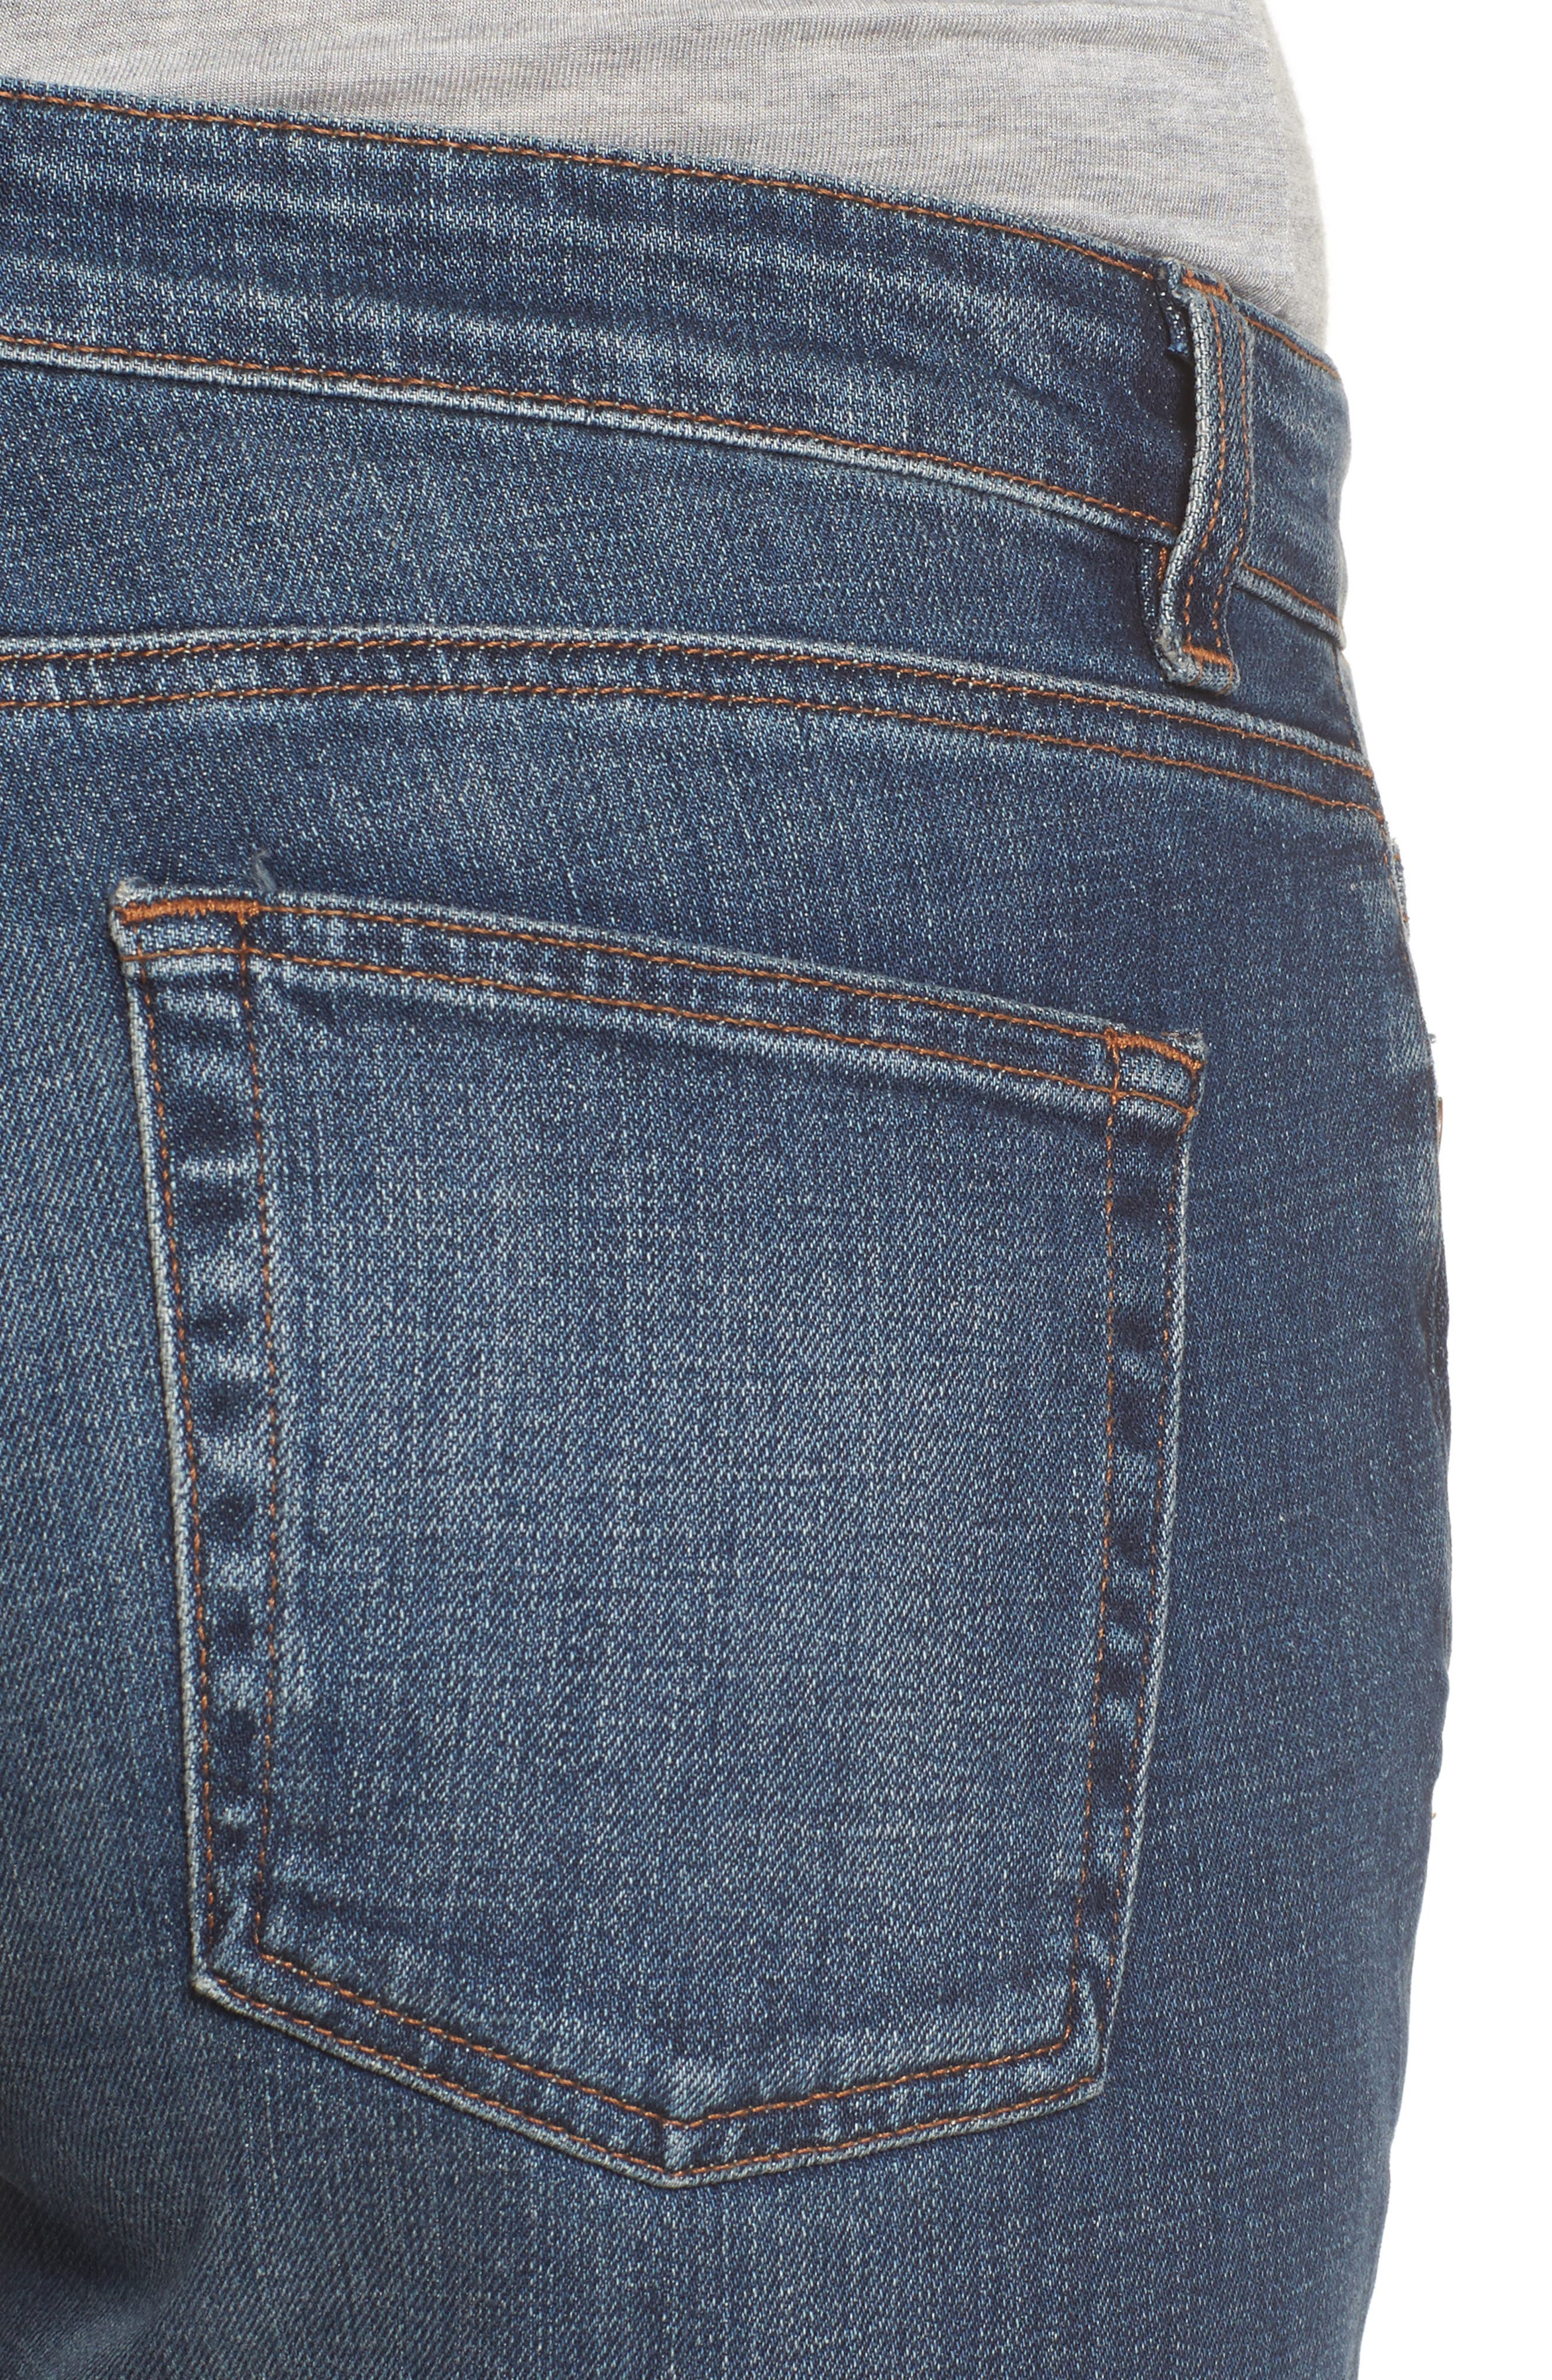 Alternate Image 4  - Eileen Fisher Organic Cotton Boyfriend Jeans (Online Only) (Regular & Petite)